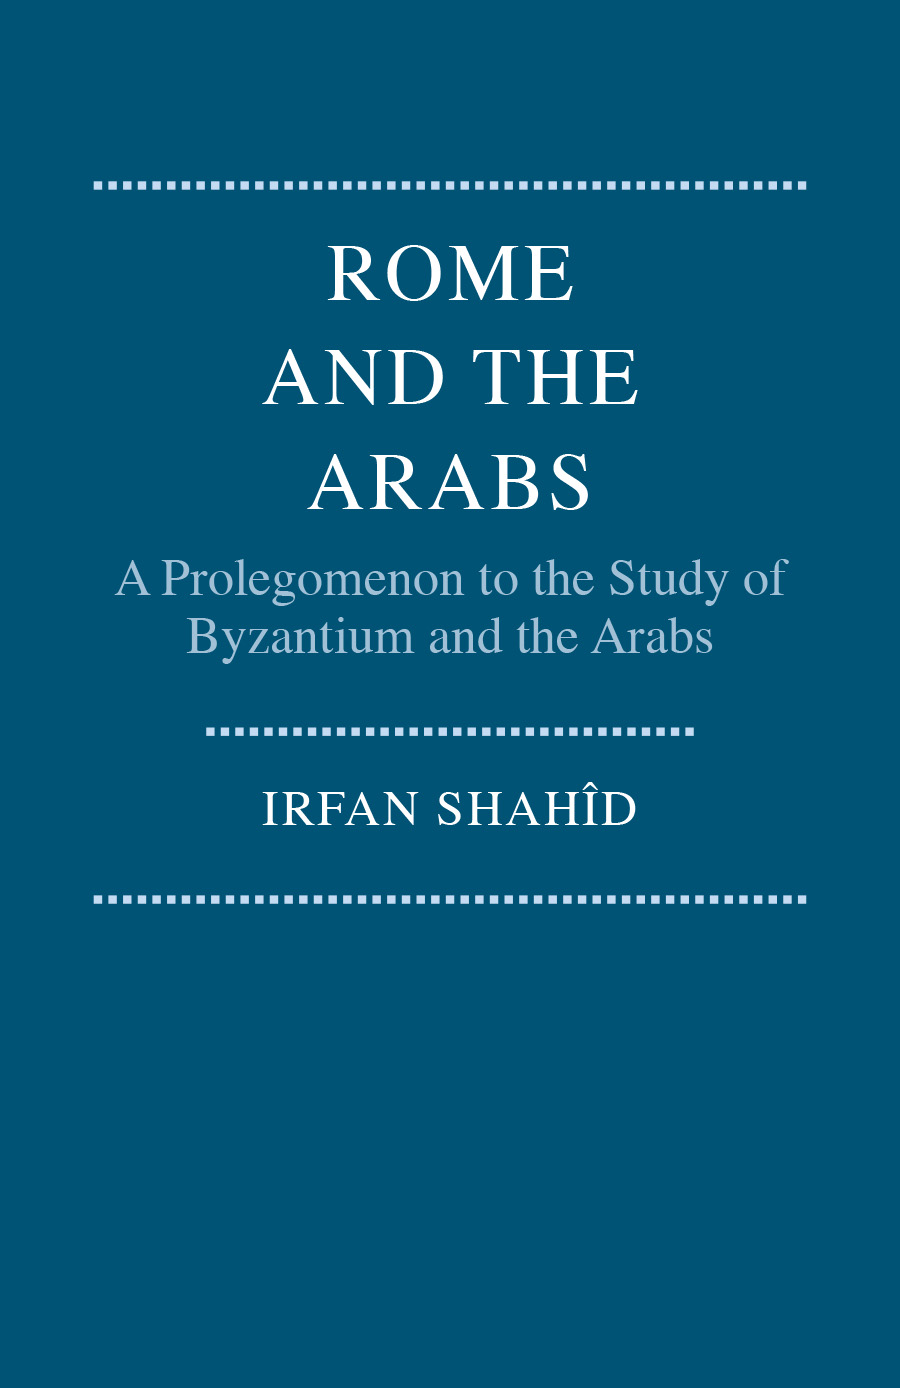 Rome and the Arabs